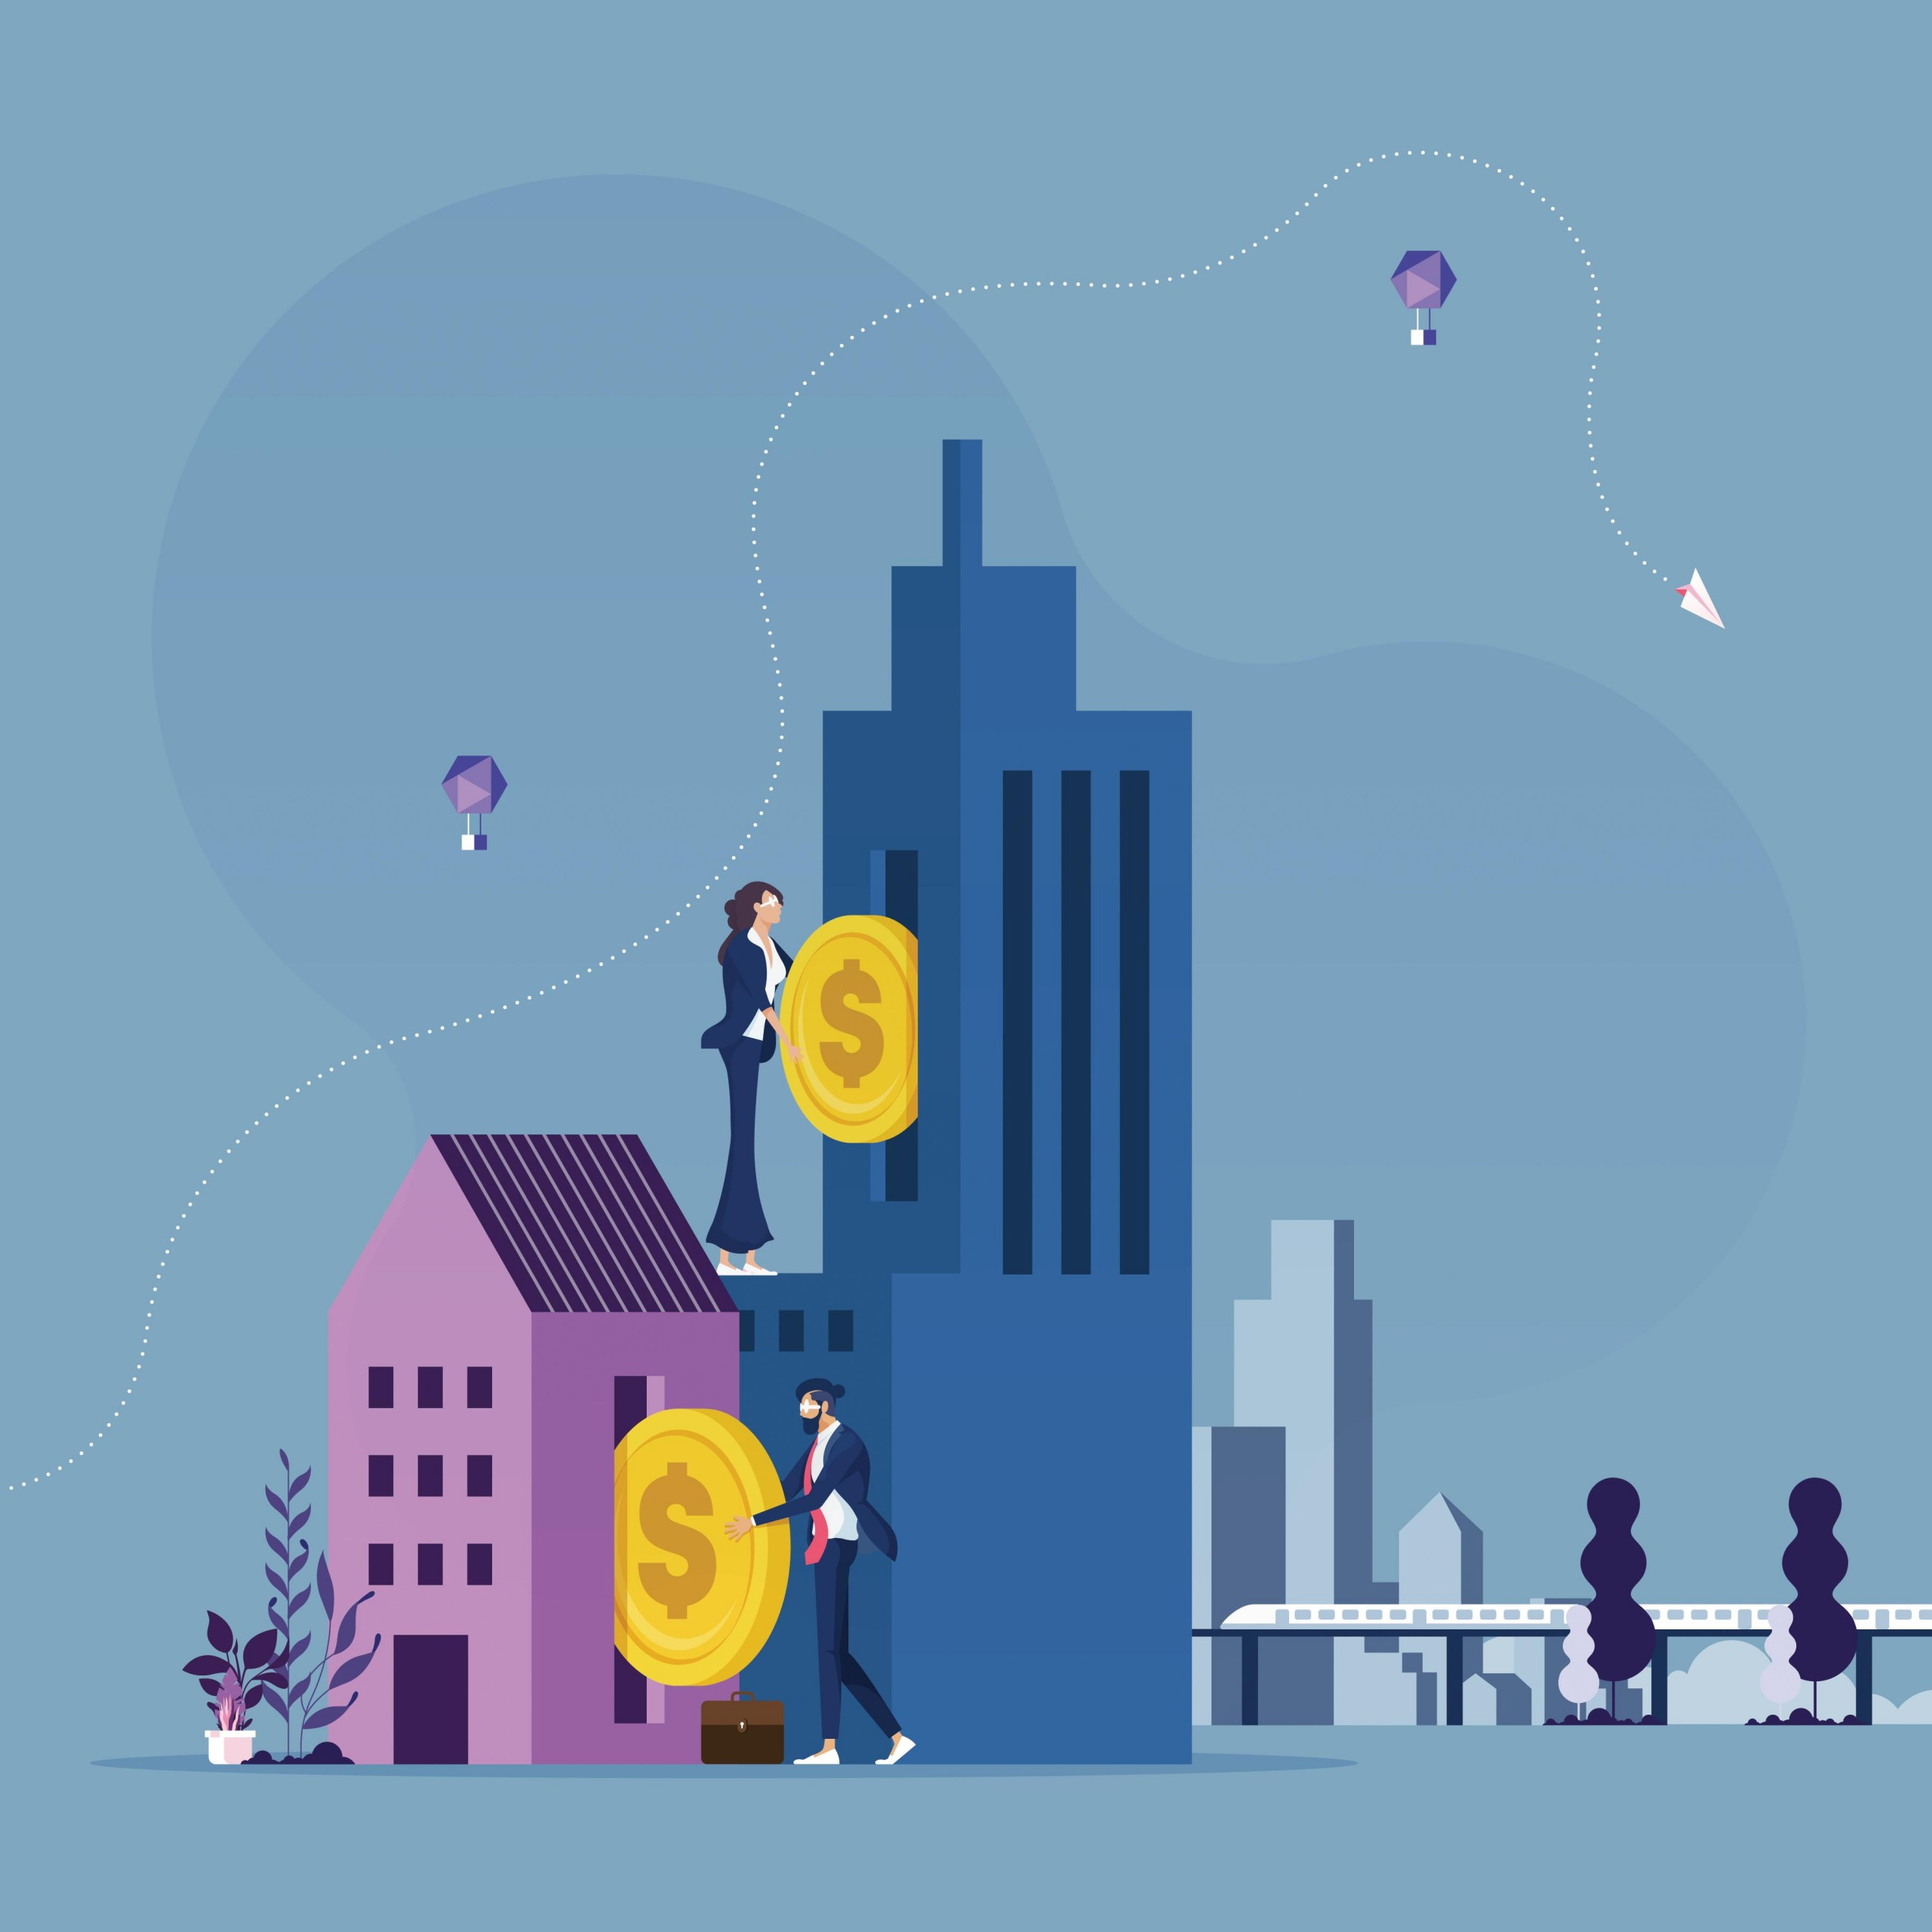 Business People Investing On Real Estate Business Concept Vector